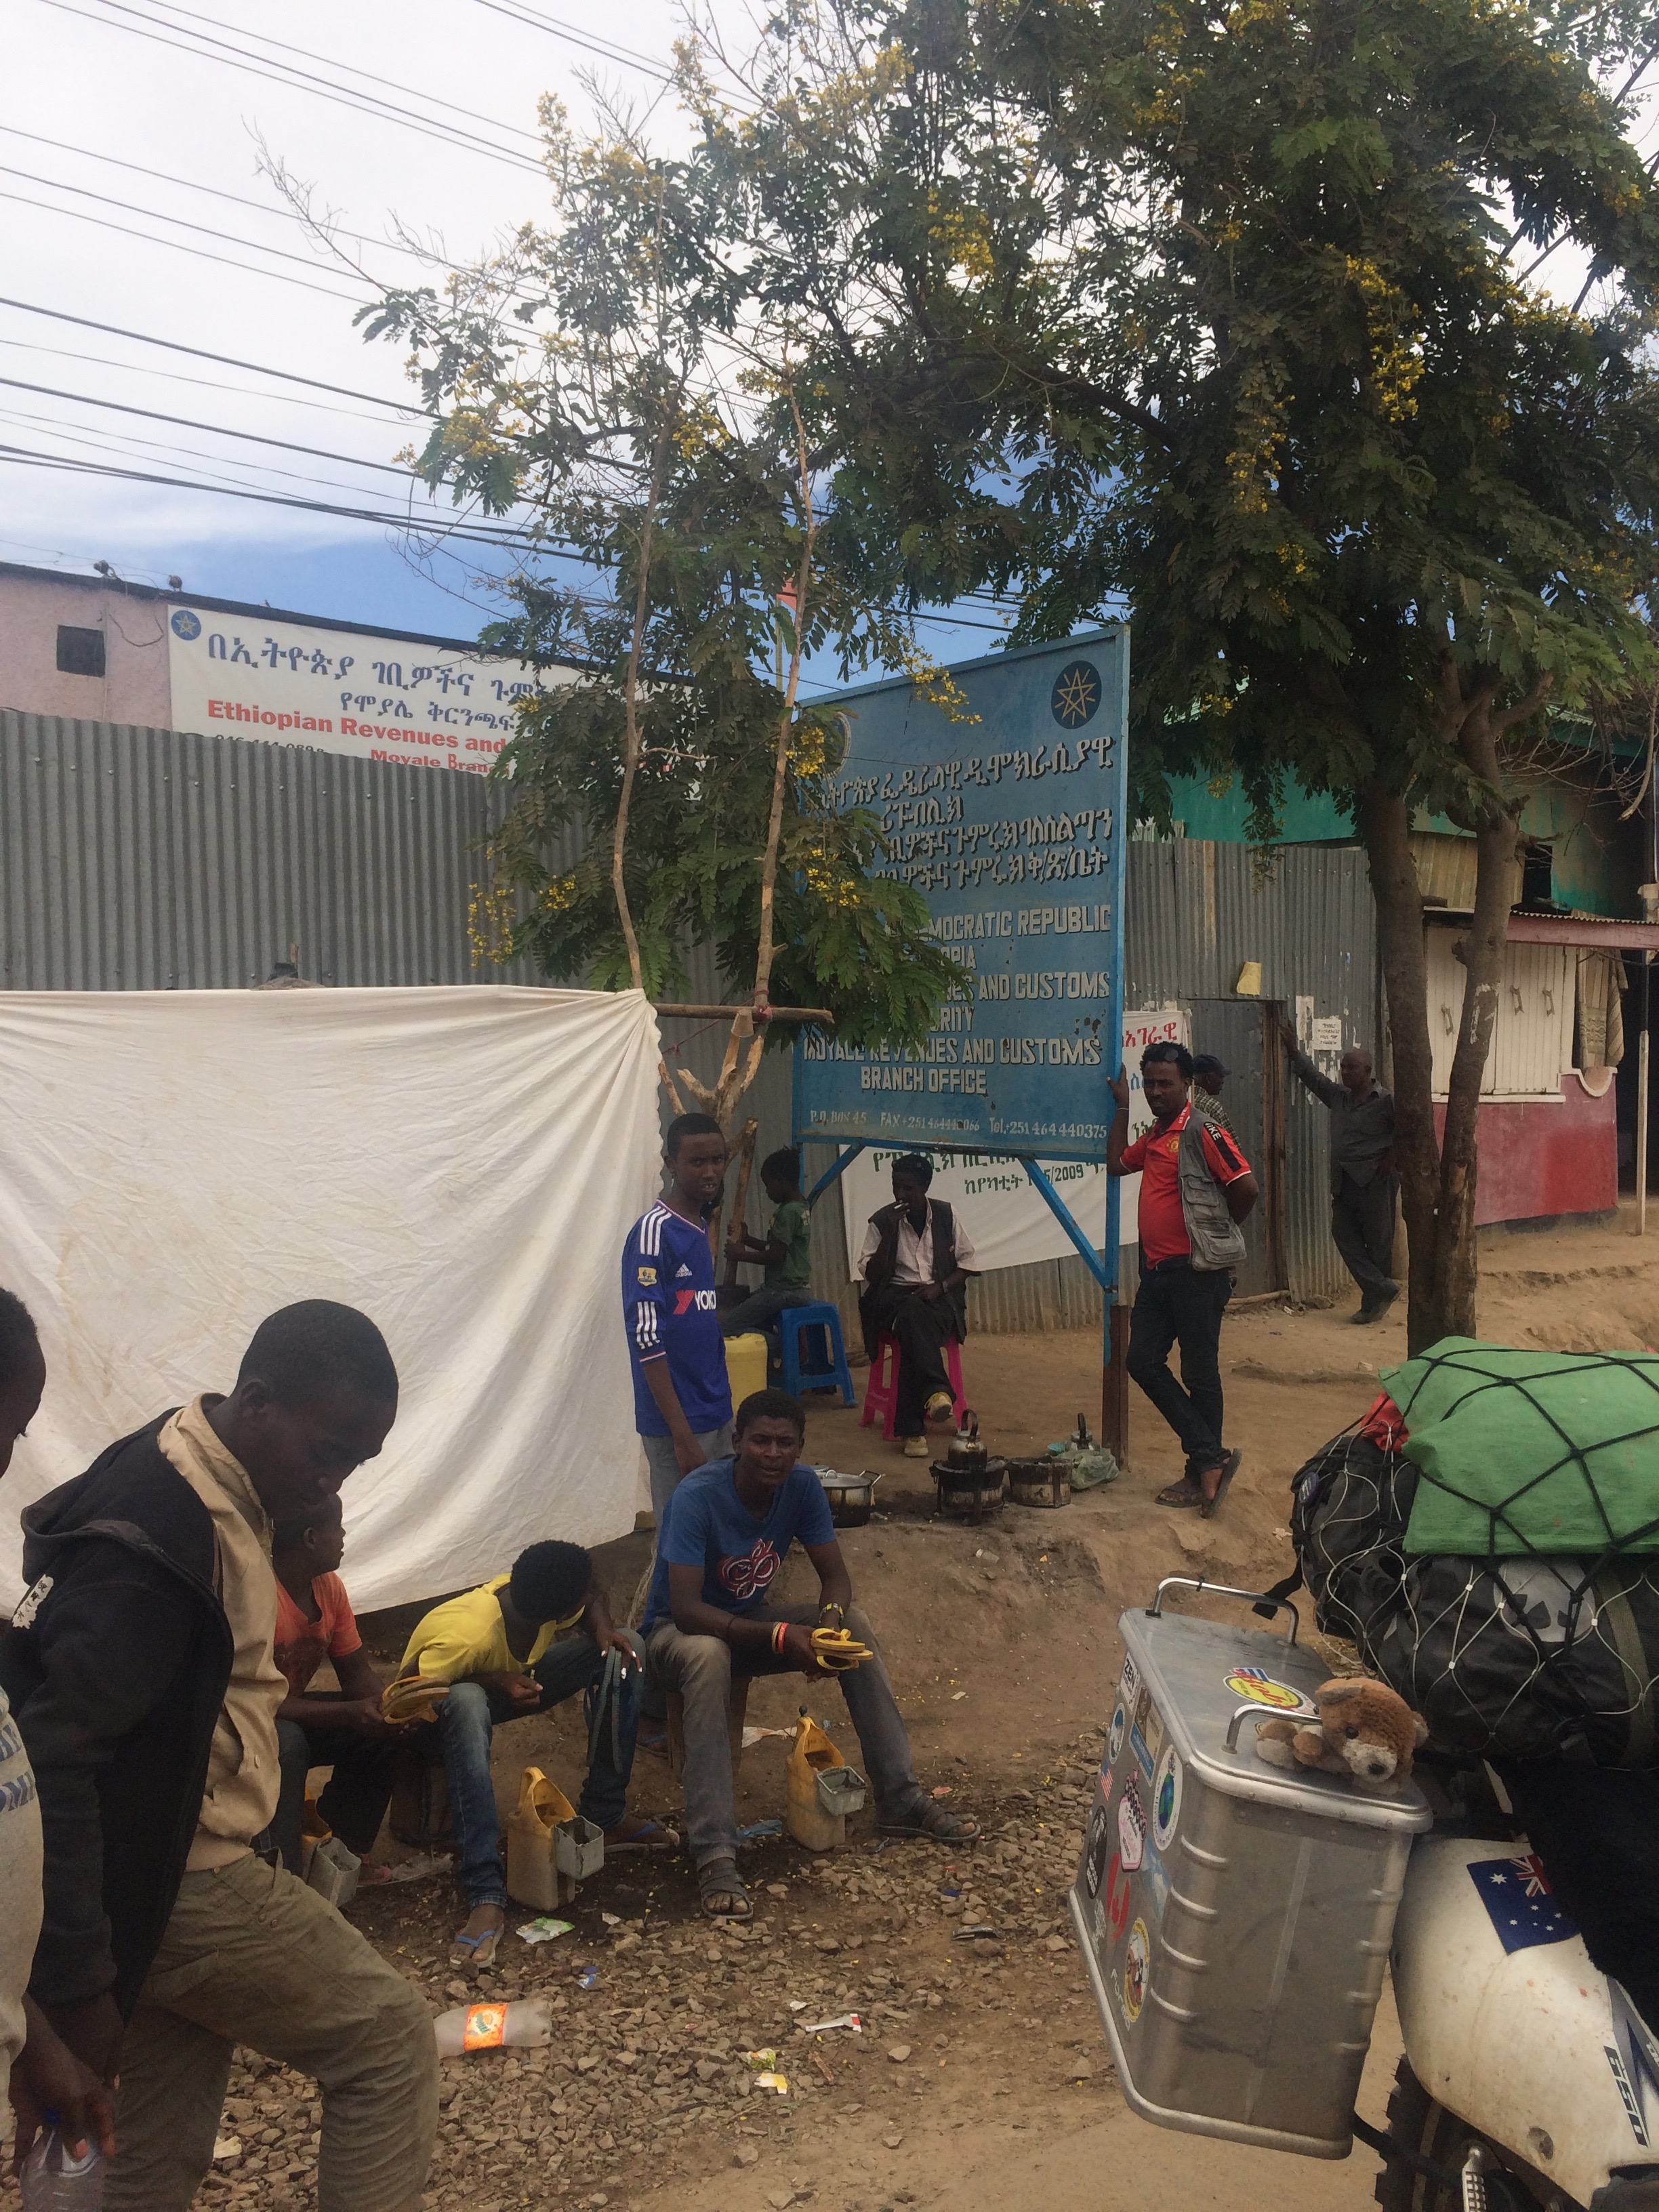 Customs in Moyale, Ethiopia - hiding behind the shoe-shine boys and the coffee brewing.